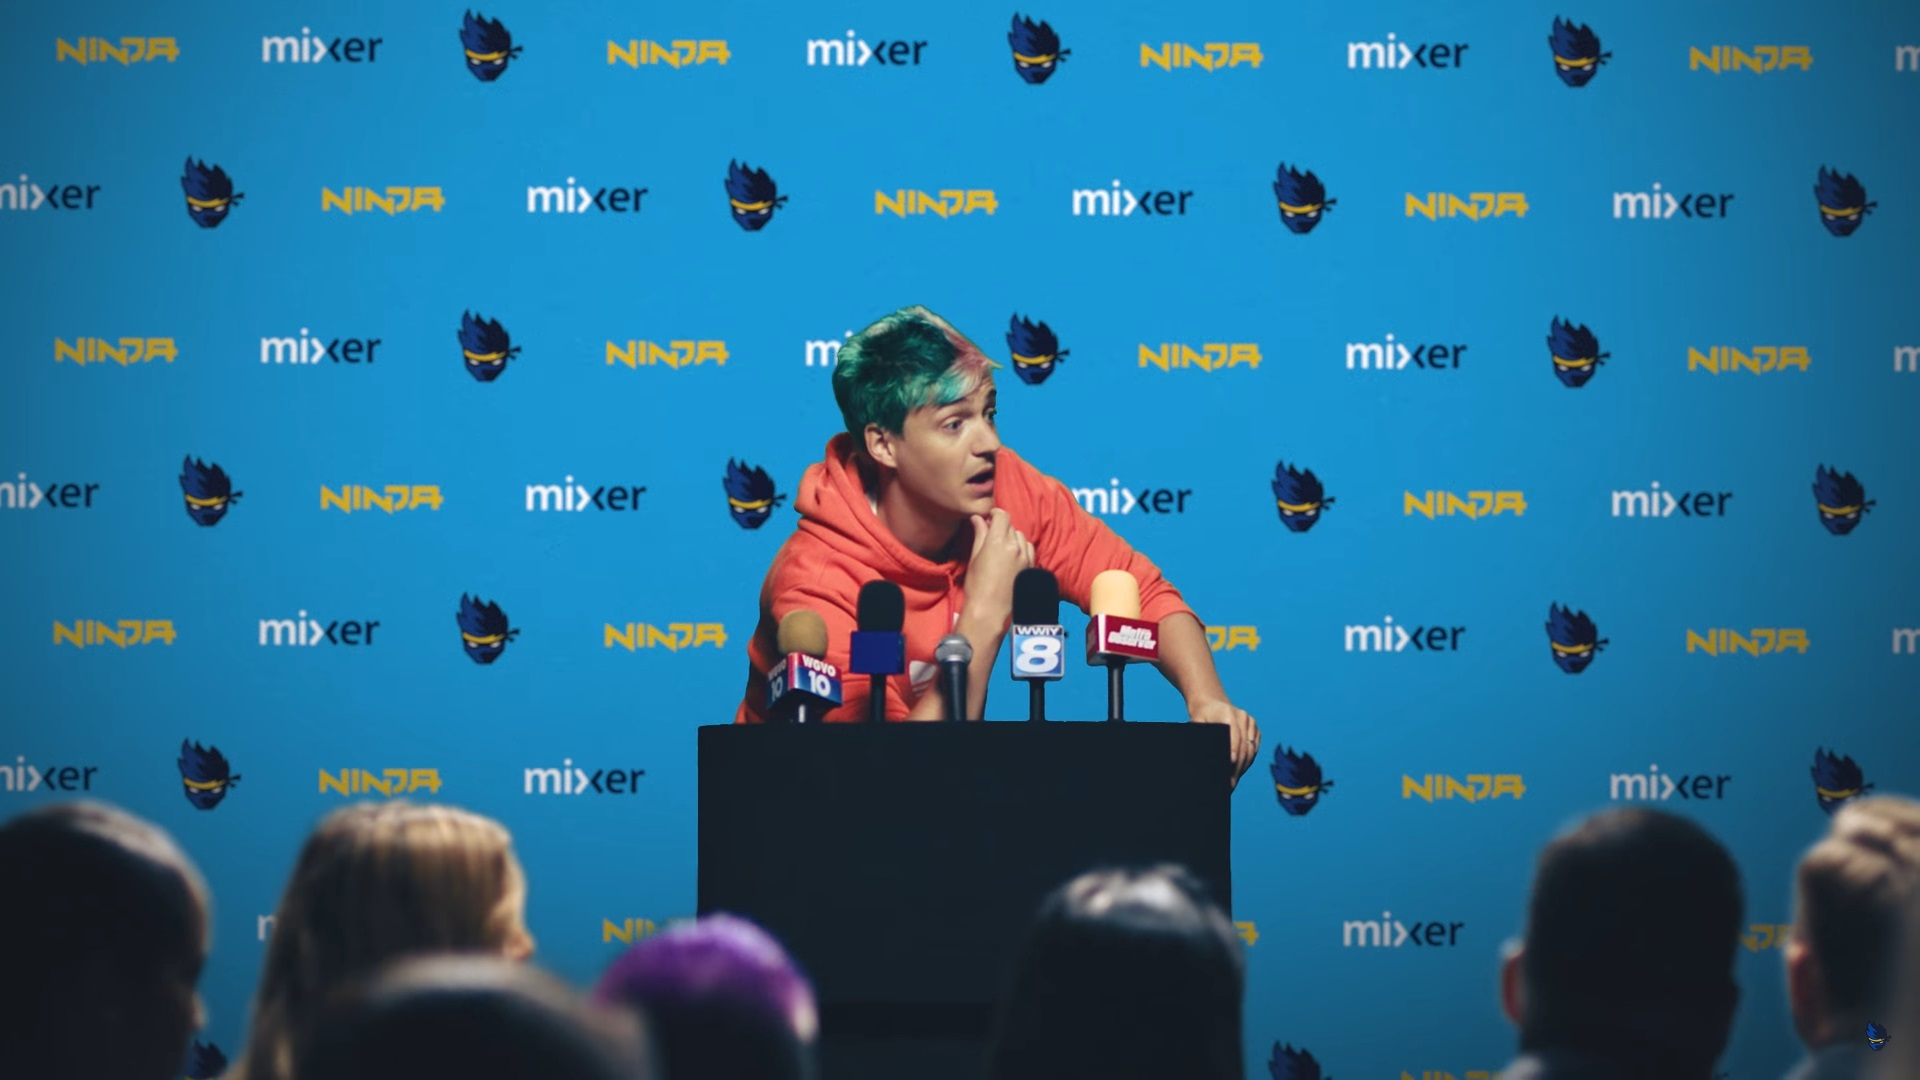 Ninja's old Twitch profile was caught streaming adult content - htxt